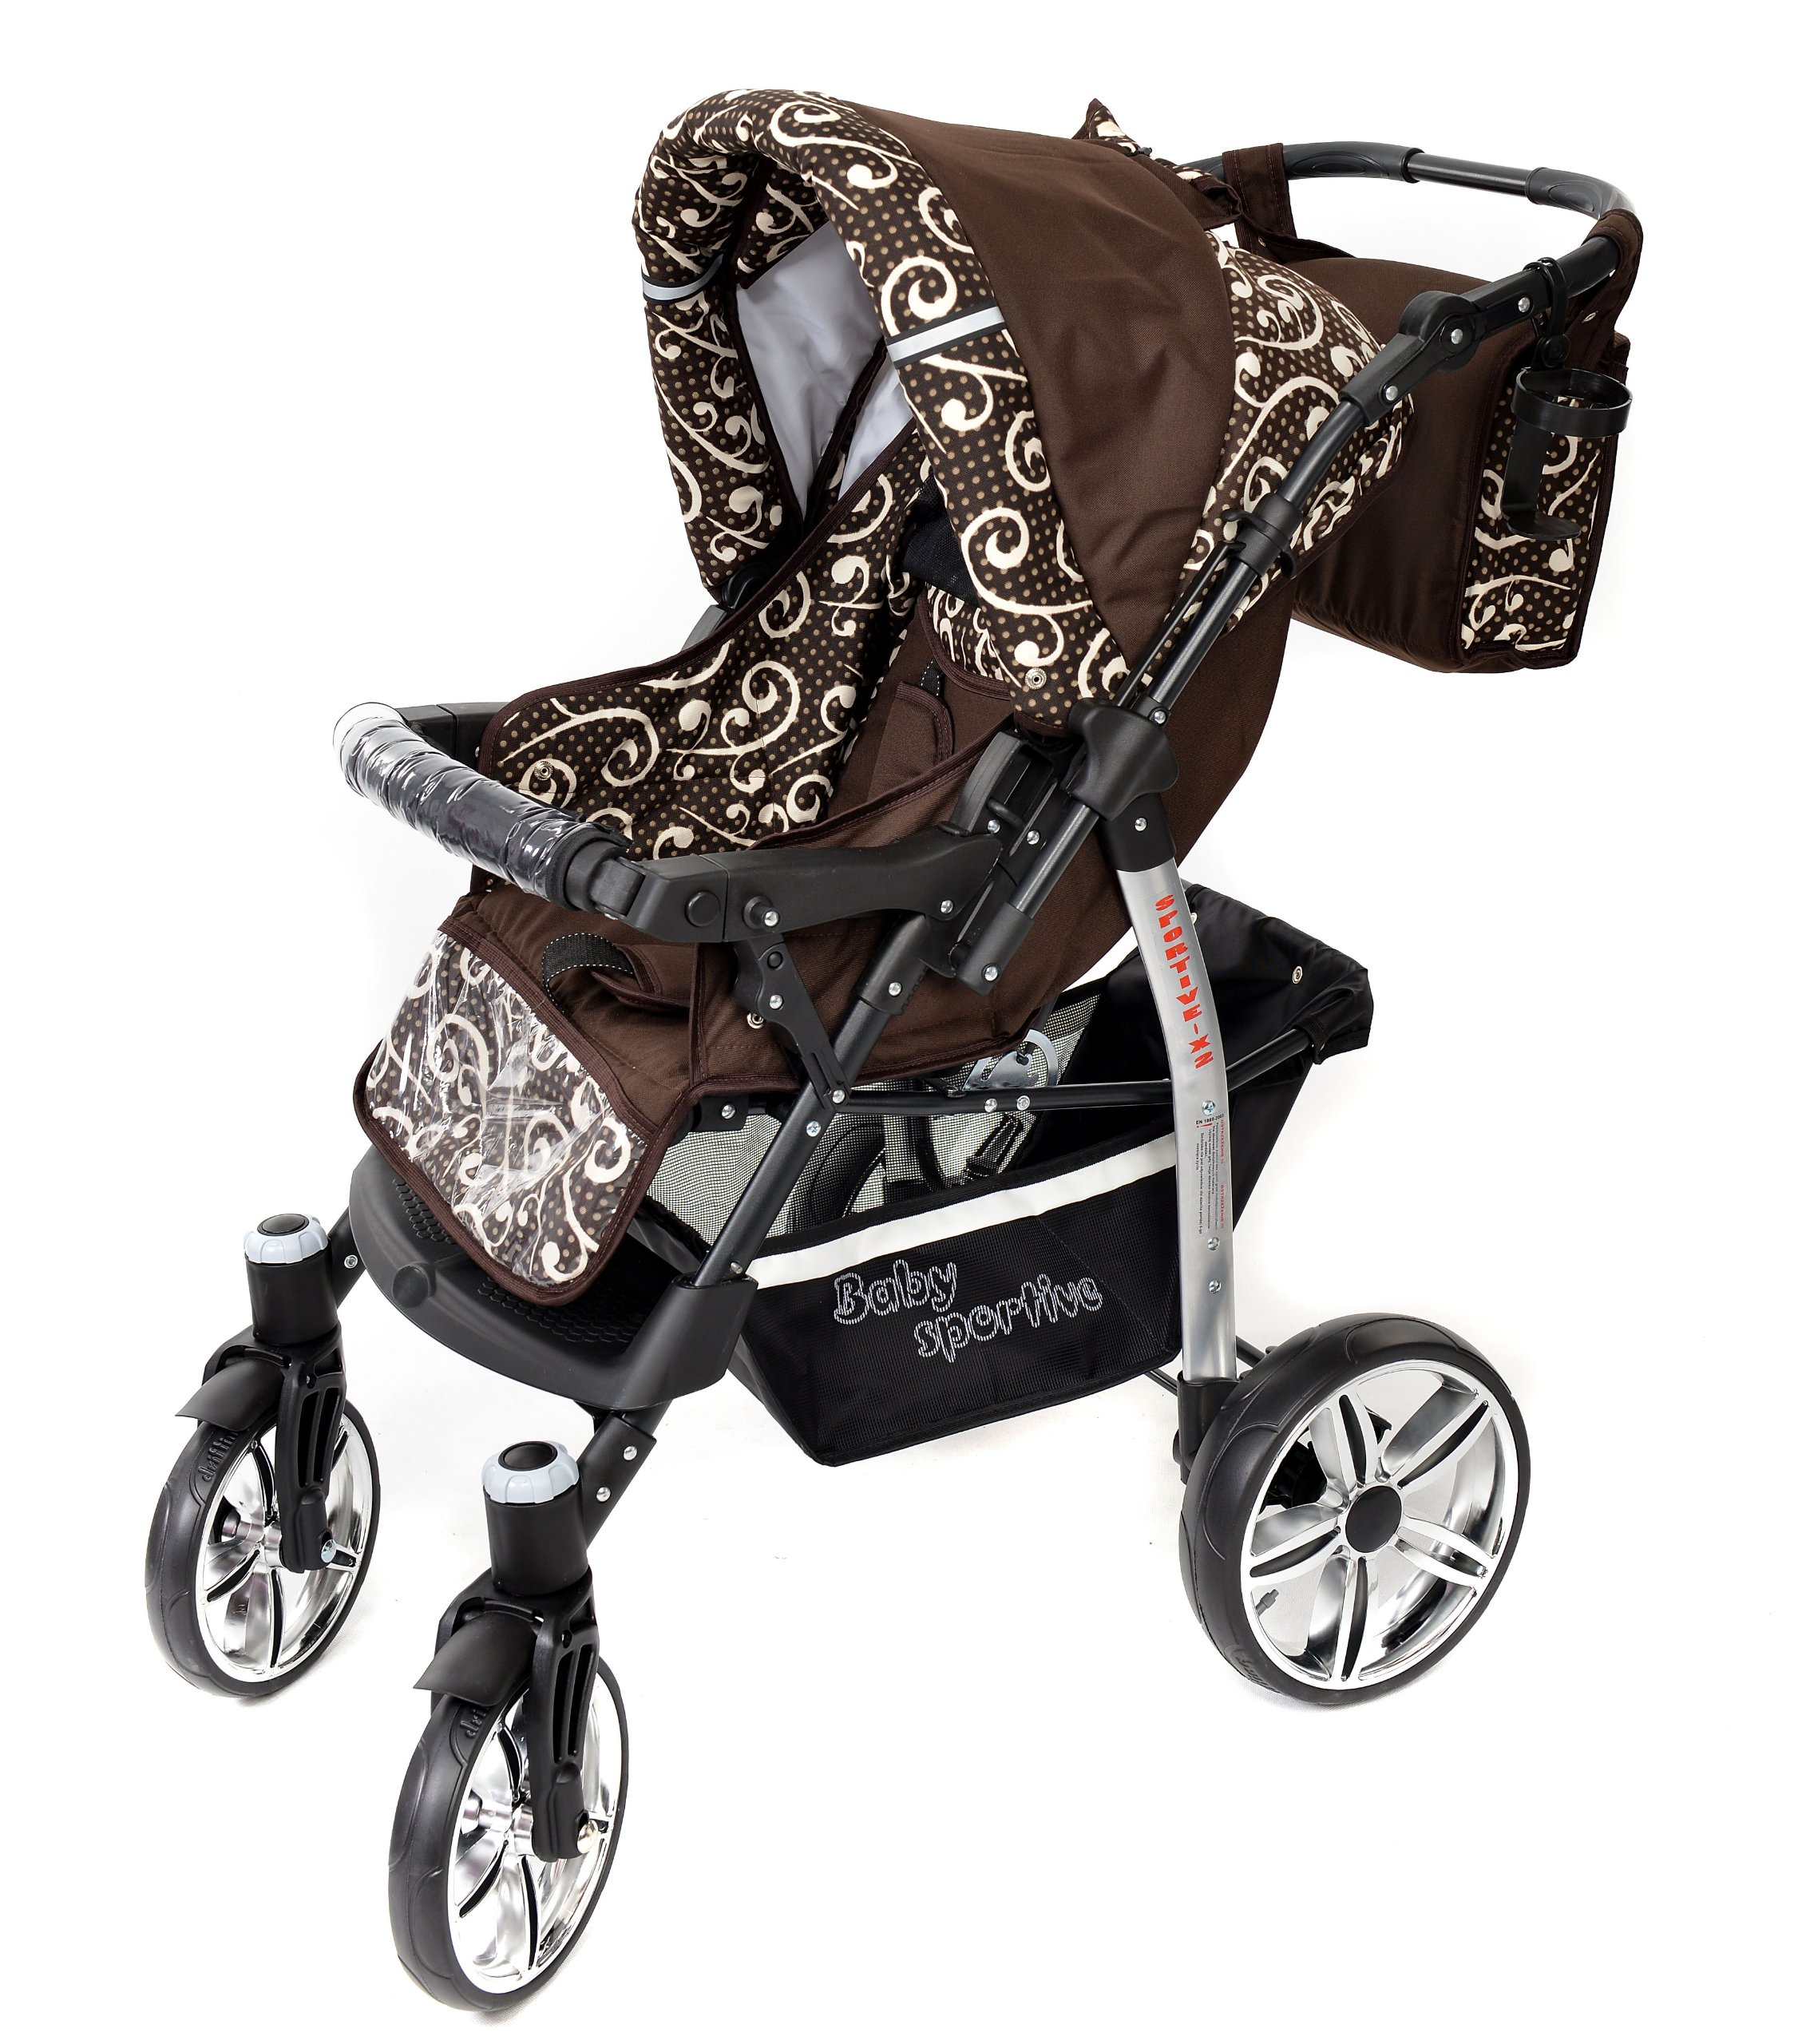 Sportive X2, 3-in-1 Travel System incl. Baby Pram with Swivel Wheels, Car Seat, Pushchair & Accessories (3-in-1 Travel System, Brown & Wawy Lines)  3 in 1 Travel System All in One Set - Pram, Car Carrier Seat and Sport Buggy + Accessories: carrier bag, rain protection, mosquito net, changing mat, removable bottle holder and removable tray for your child's bits and pieces Suitable from birth, Easy Quick Folding System; Large storage basket; Turnable handle bar that allows to face or rear the drive direction; Quick release rear wheels for easy cleaning after muddy walks Front lockable 360o swivel wheels for manoeuvrability , Small sized when folded, fits into many small car trunks, Carry-cot with a removable hood, Reflective elements for better visibility 4